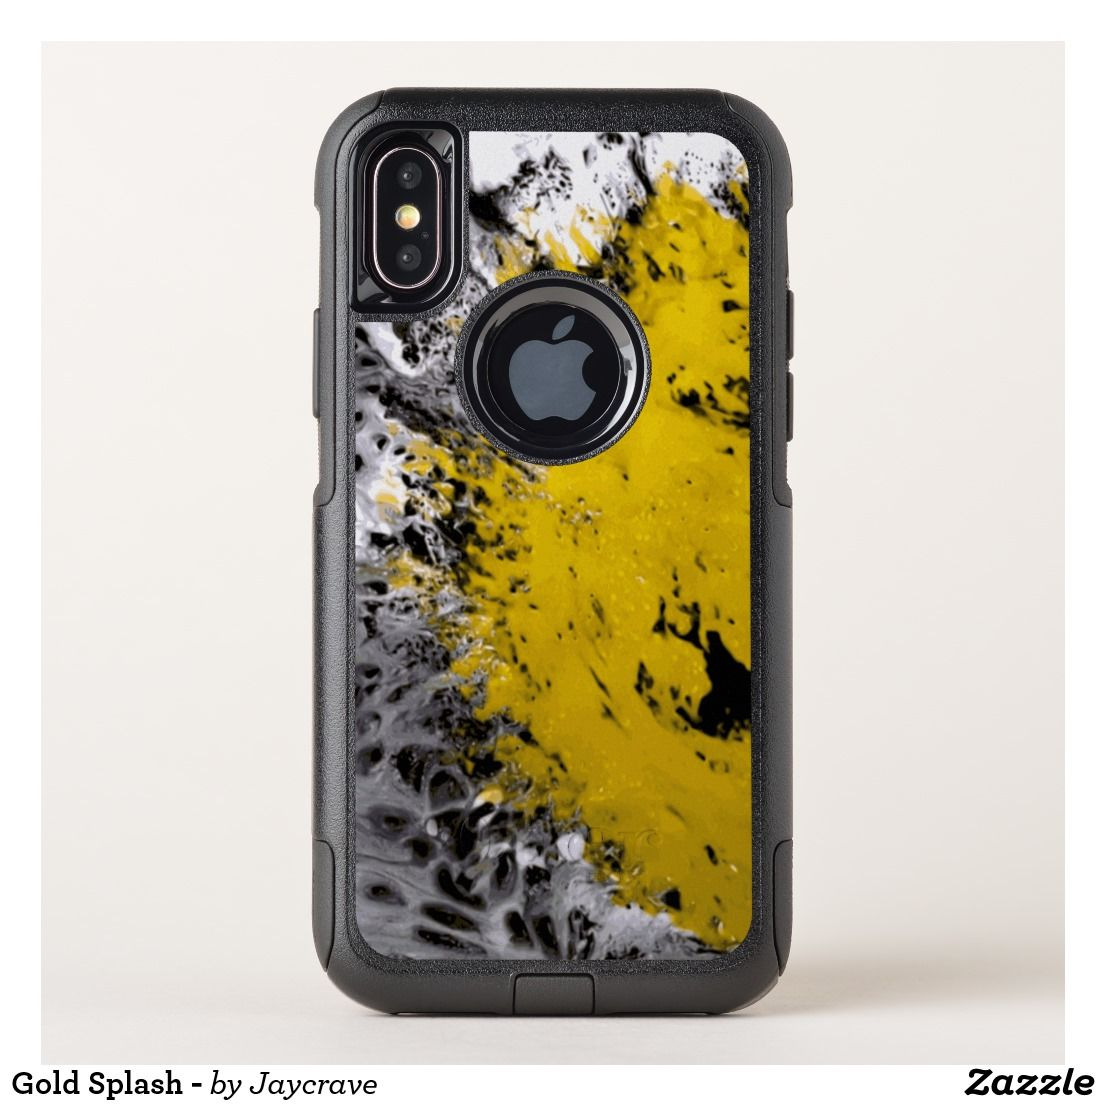 Gold splash otterbox iphone case with